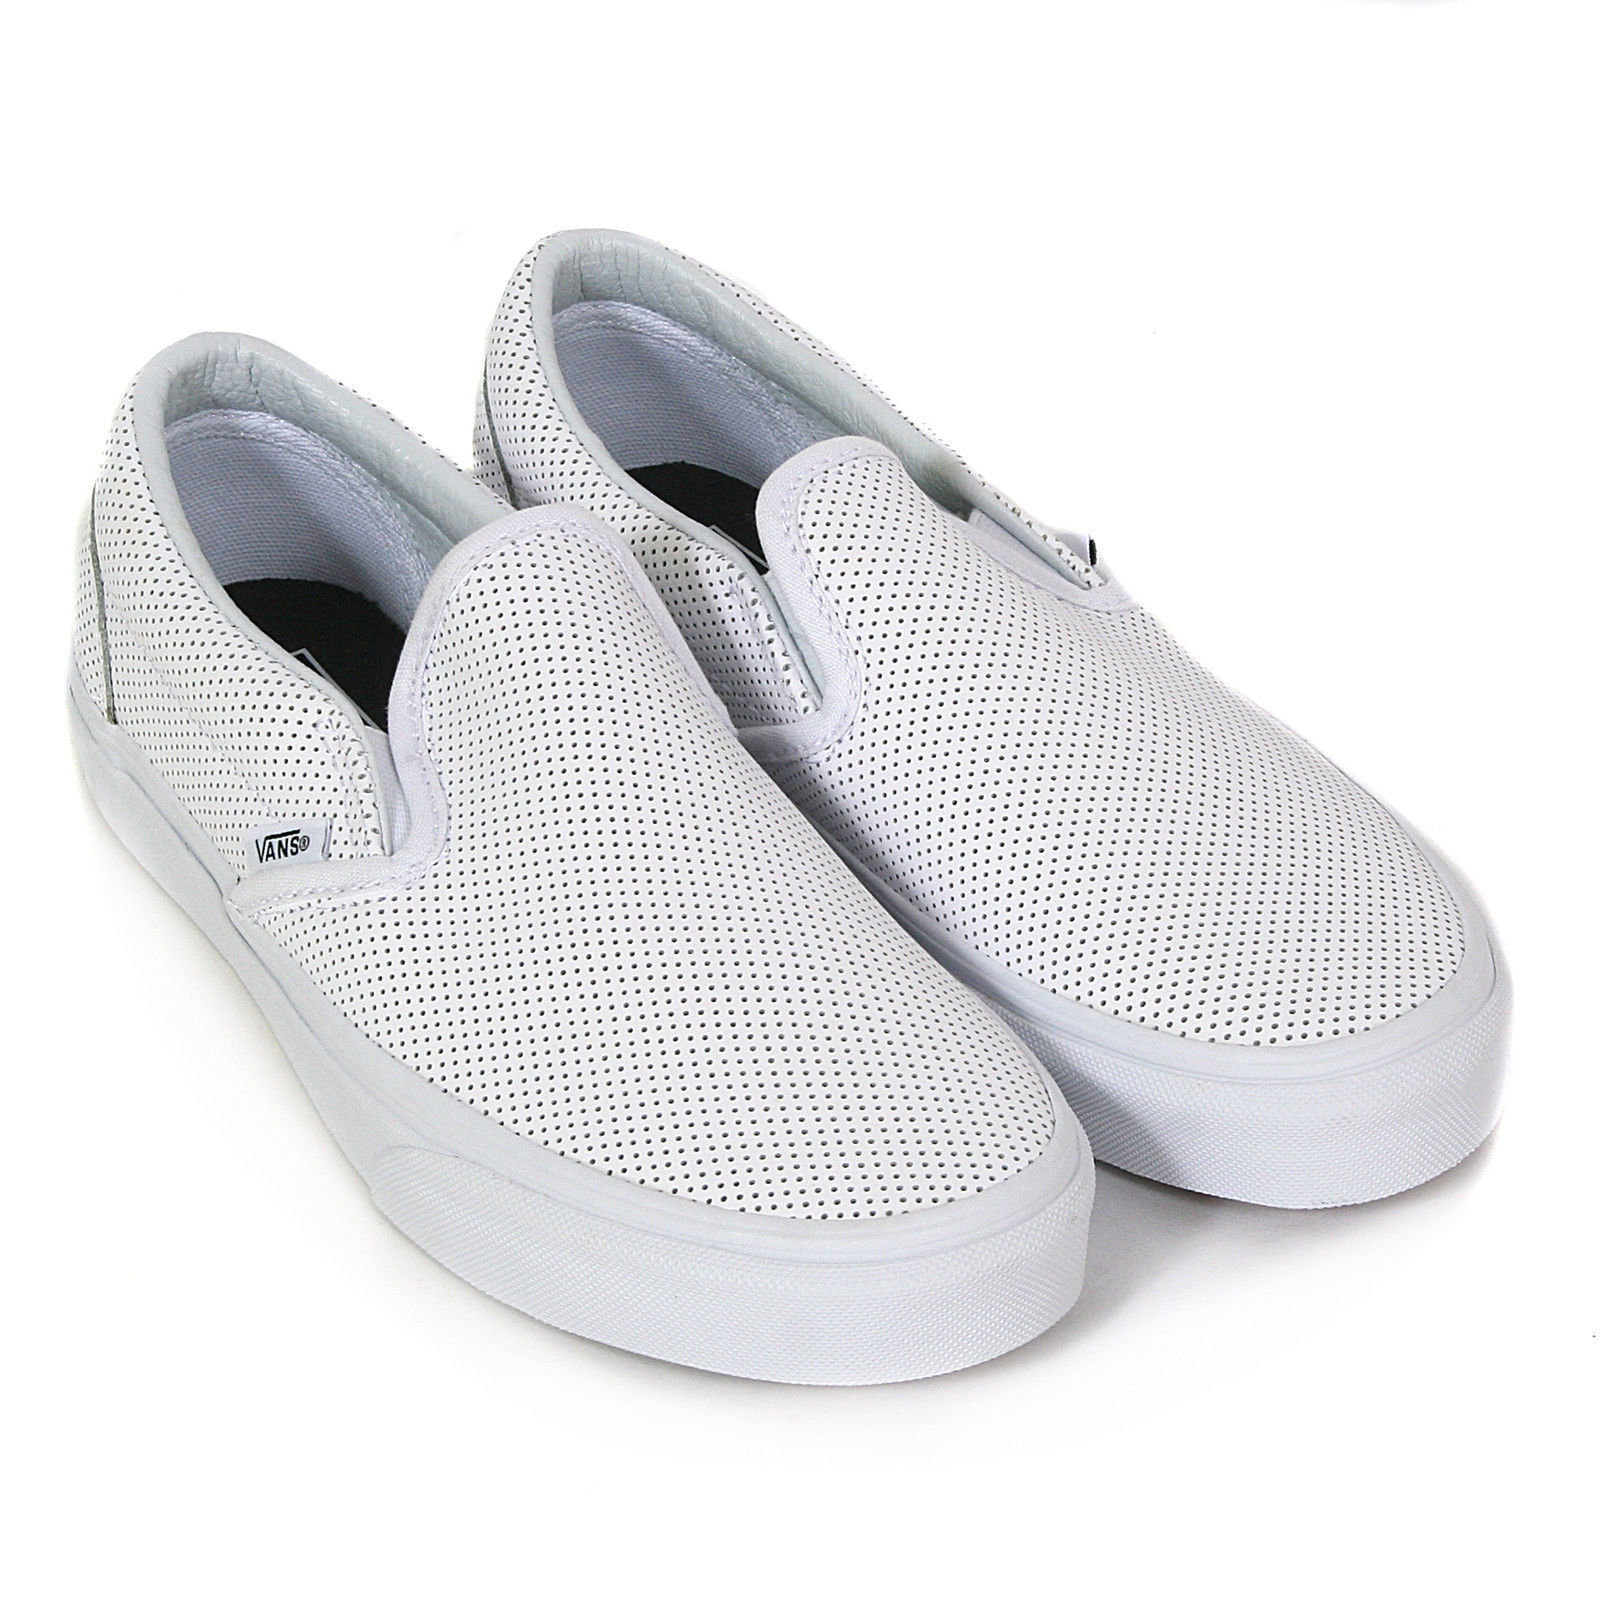 VANS-SHOES-CLASSIC-SLIP-ON-WHITE-PERFORATED-LEATHER-CSO-FREE-POST-AUST-SELLER thumbnail 15